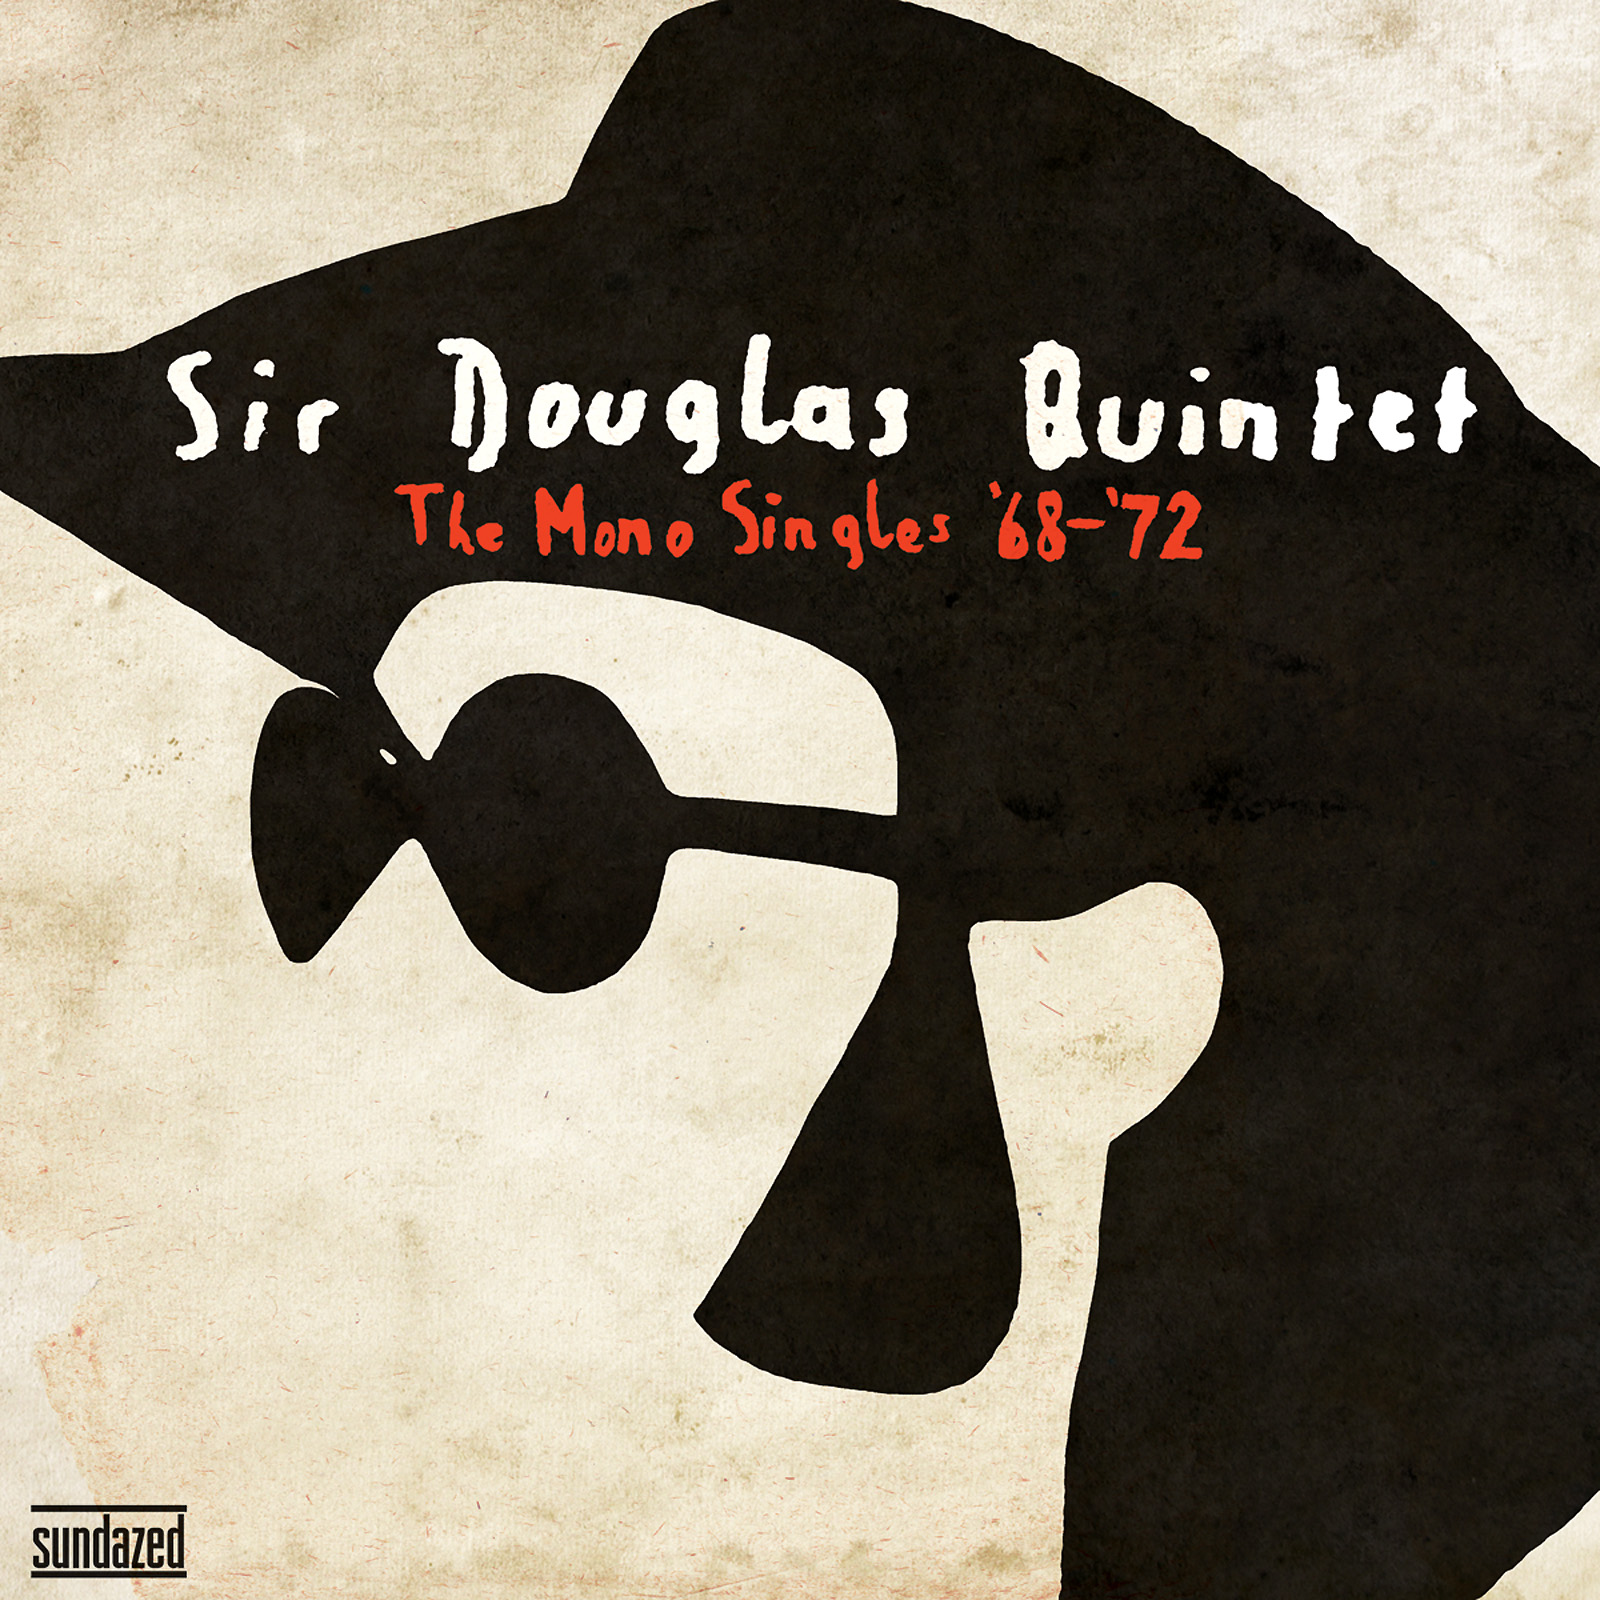 Sir Douglas Quintet - The Mono Singles 68-72 2-LP Set